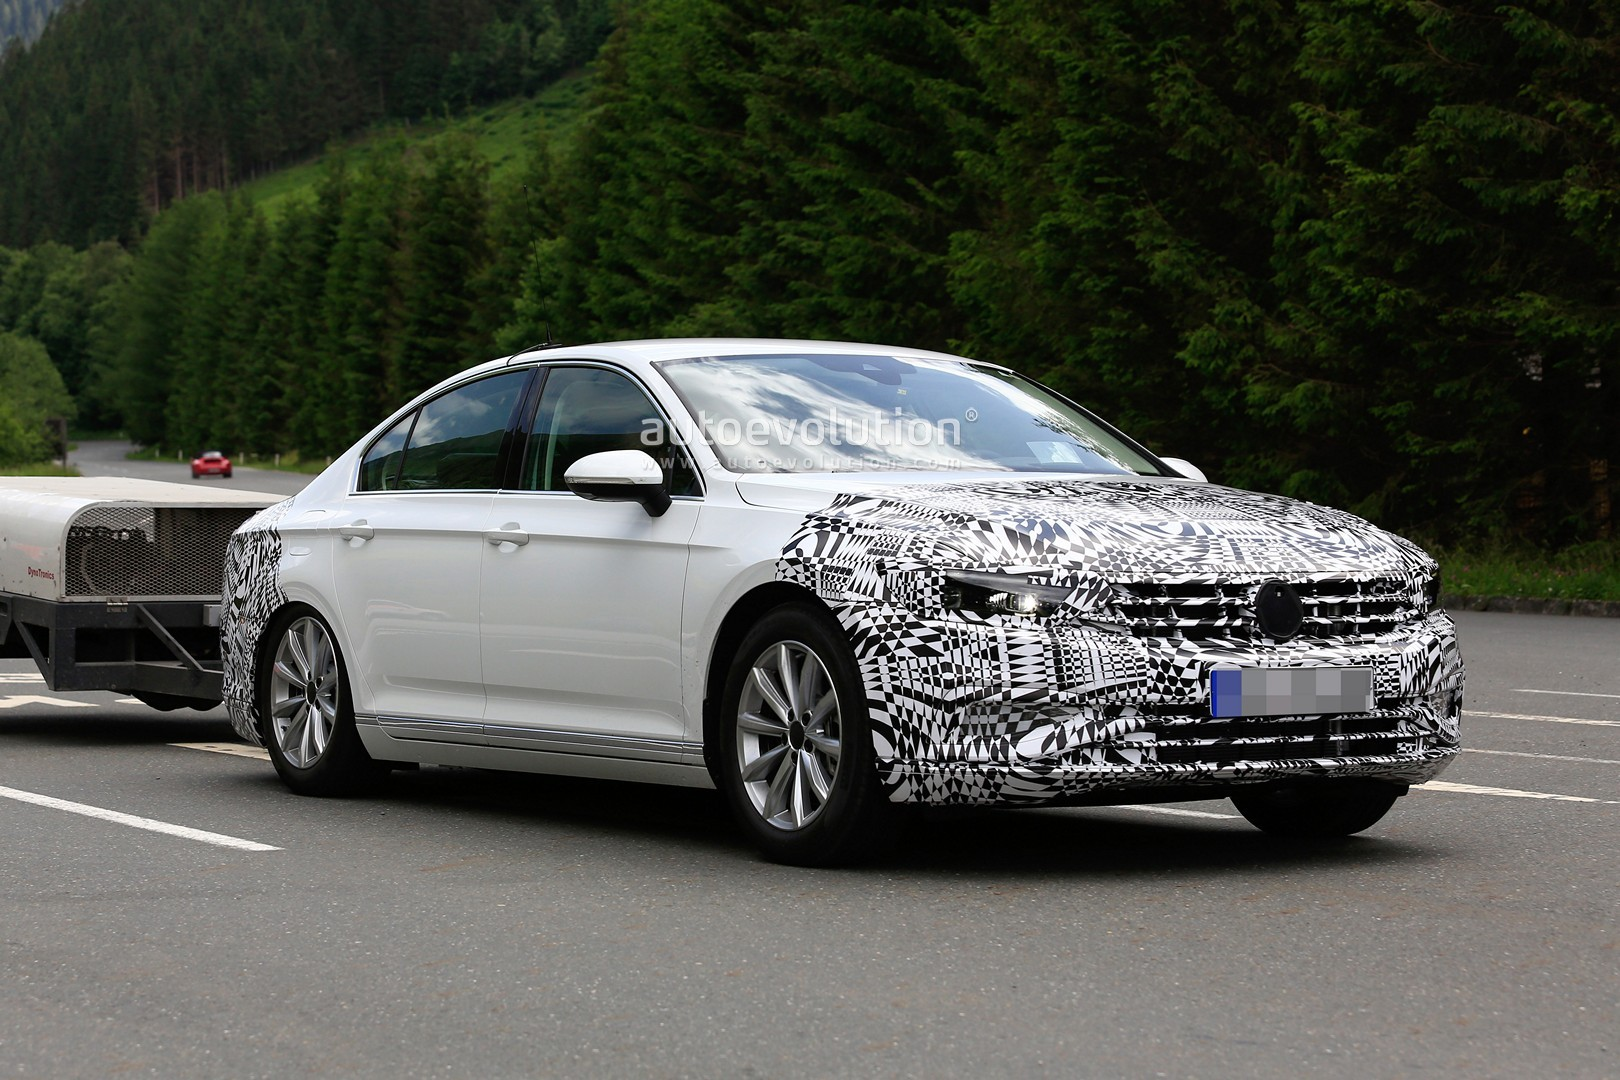 2019 Volkswagen Passat Facelift Spied In China Without ...